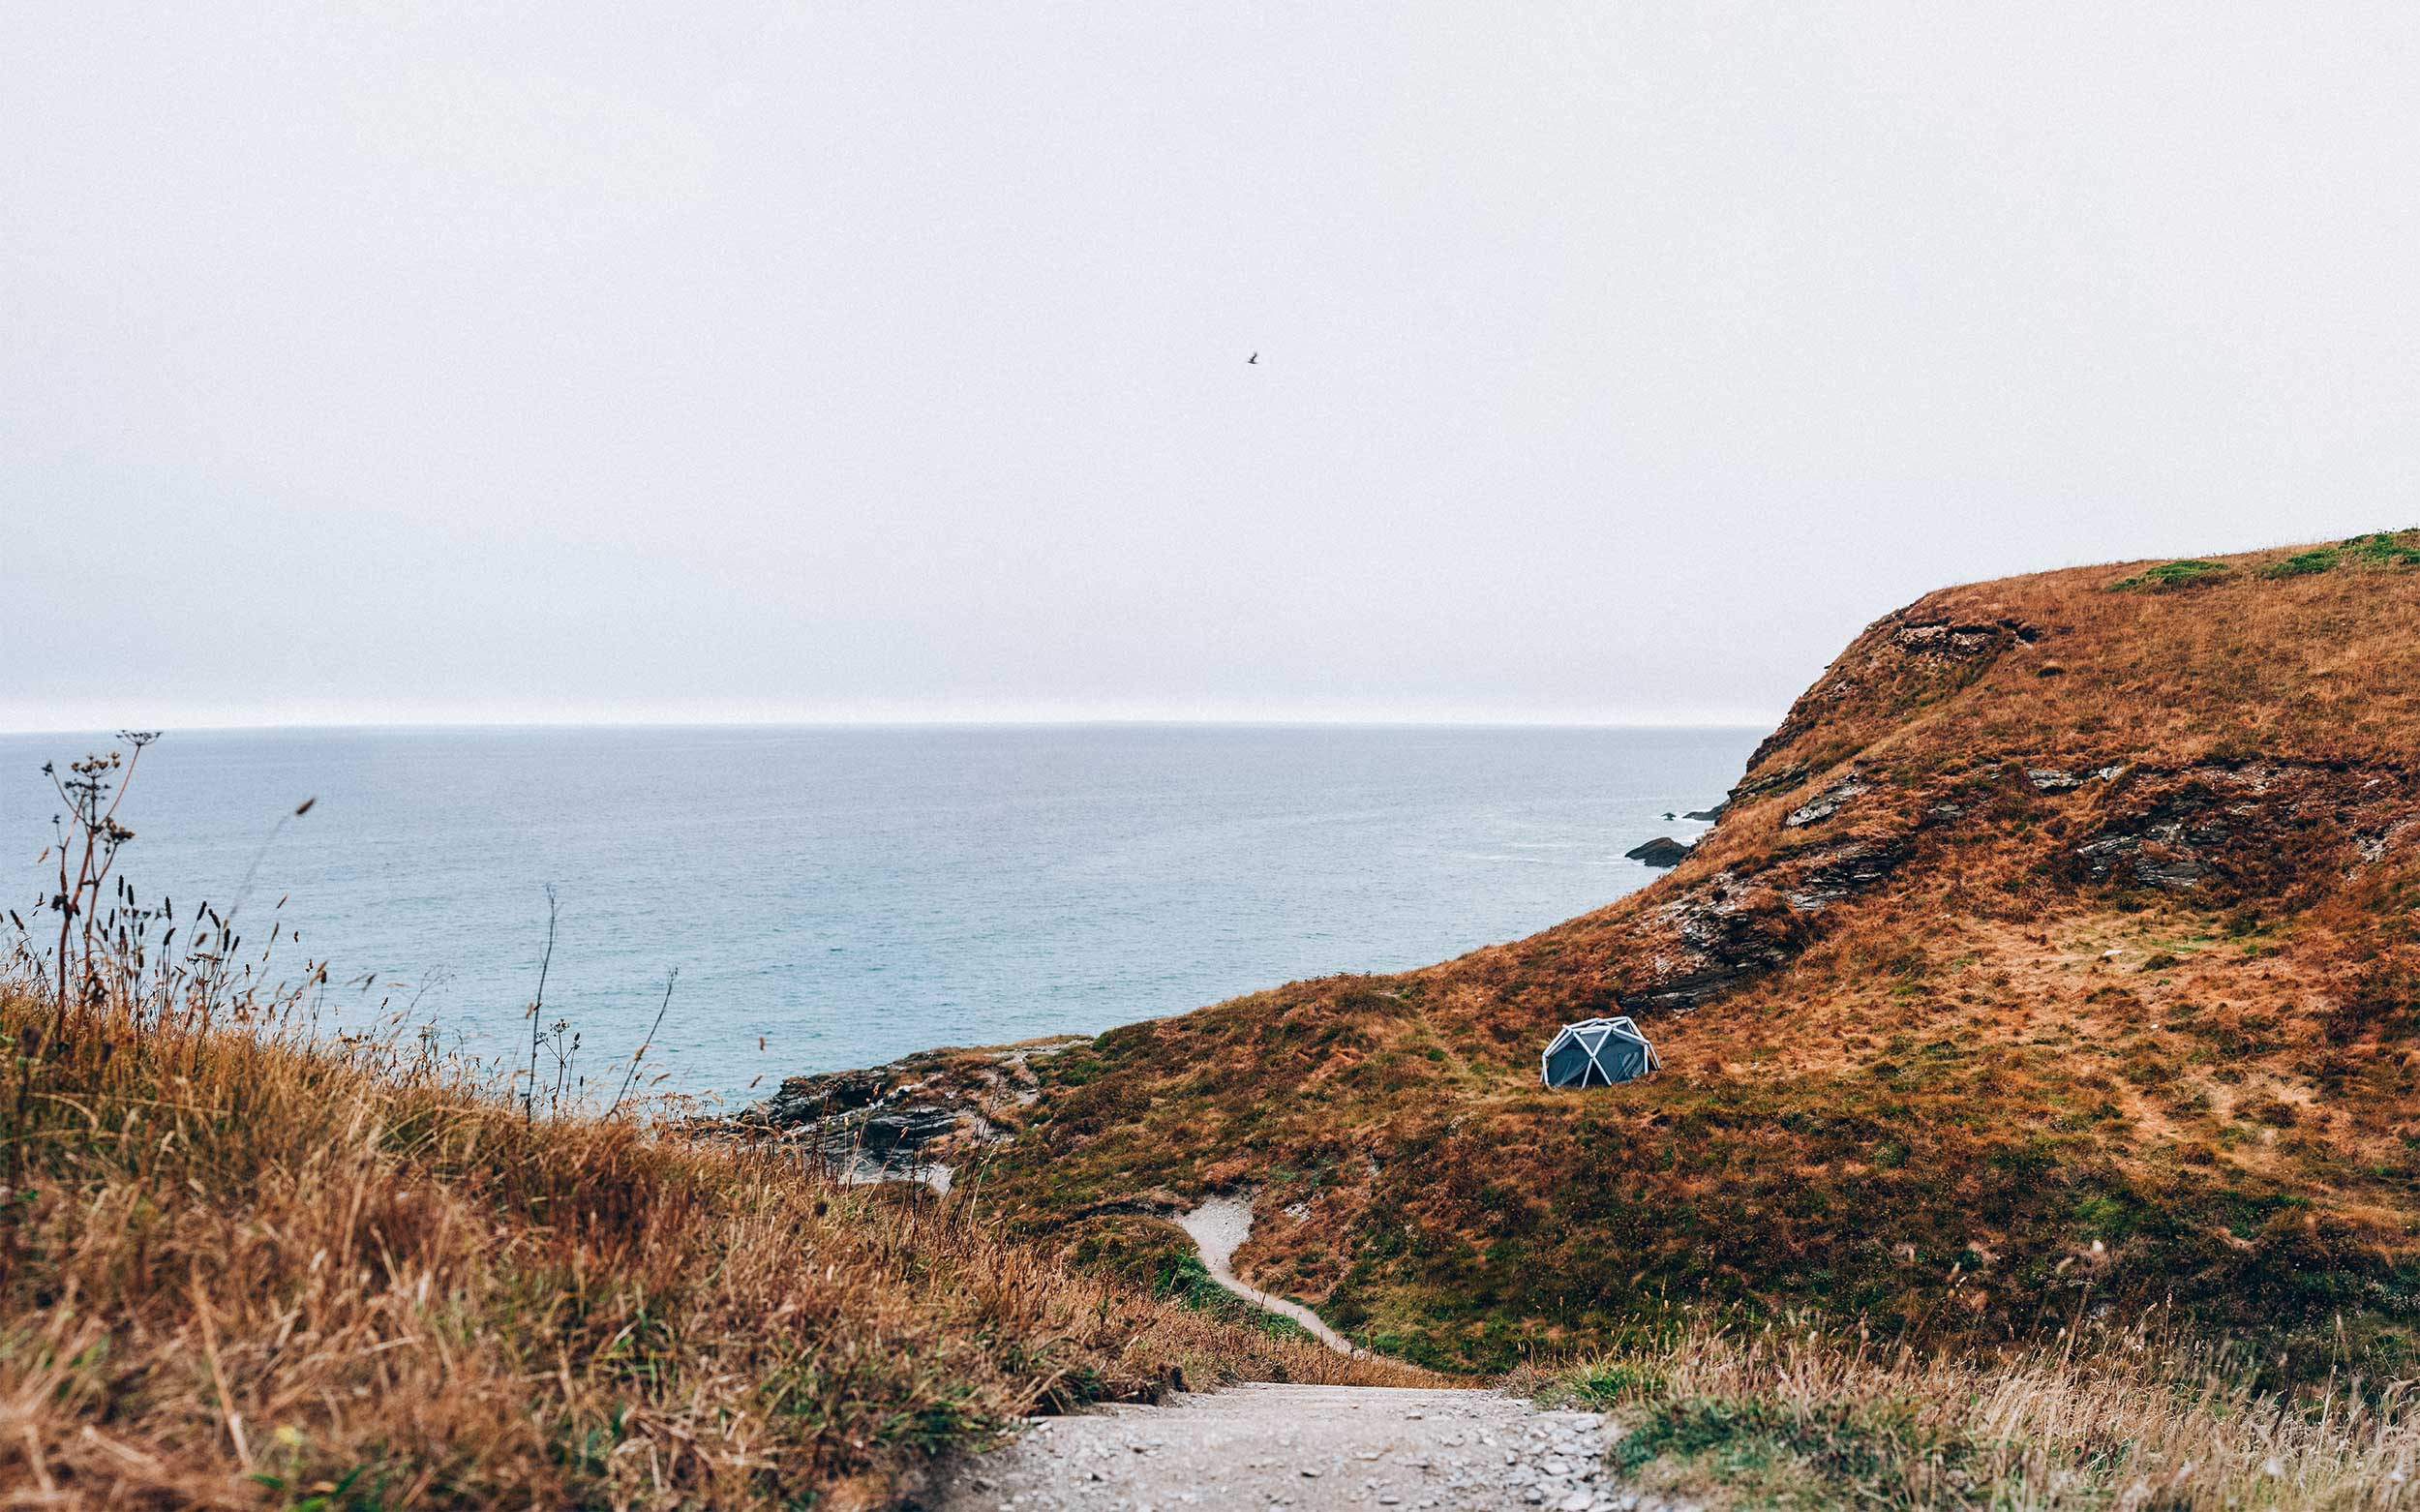 Solo+Camping+in+Cornwall+_+With+Heimplanet+_+Karl+Mackie+Photography.jpeg